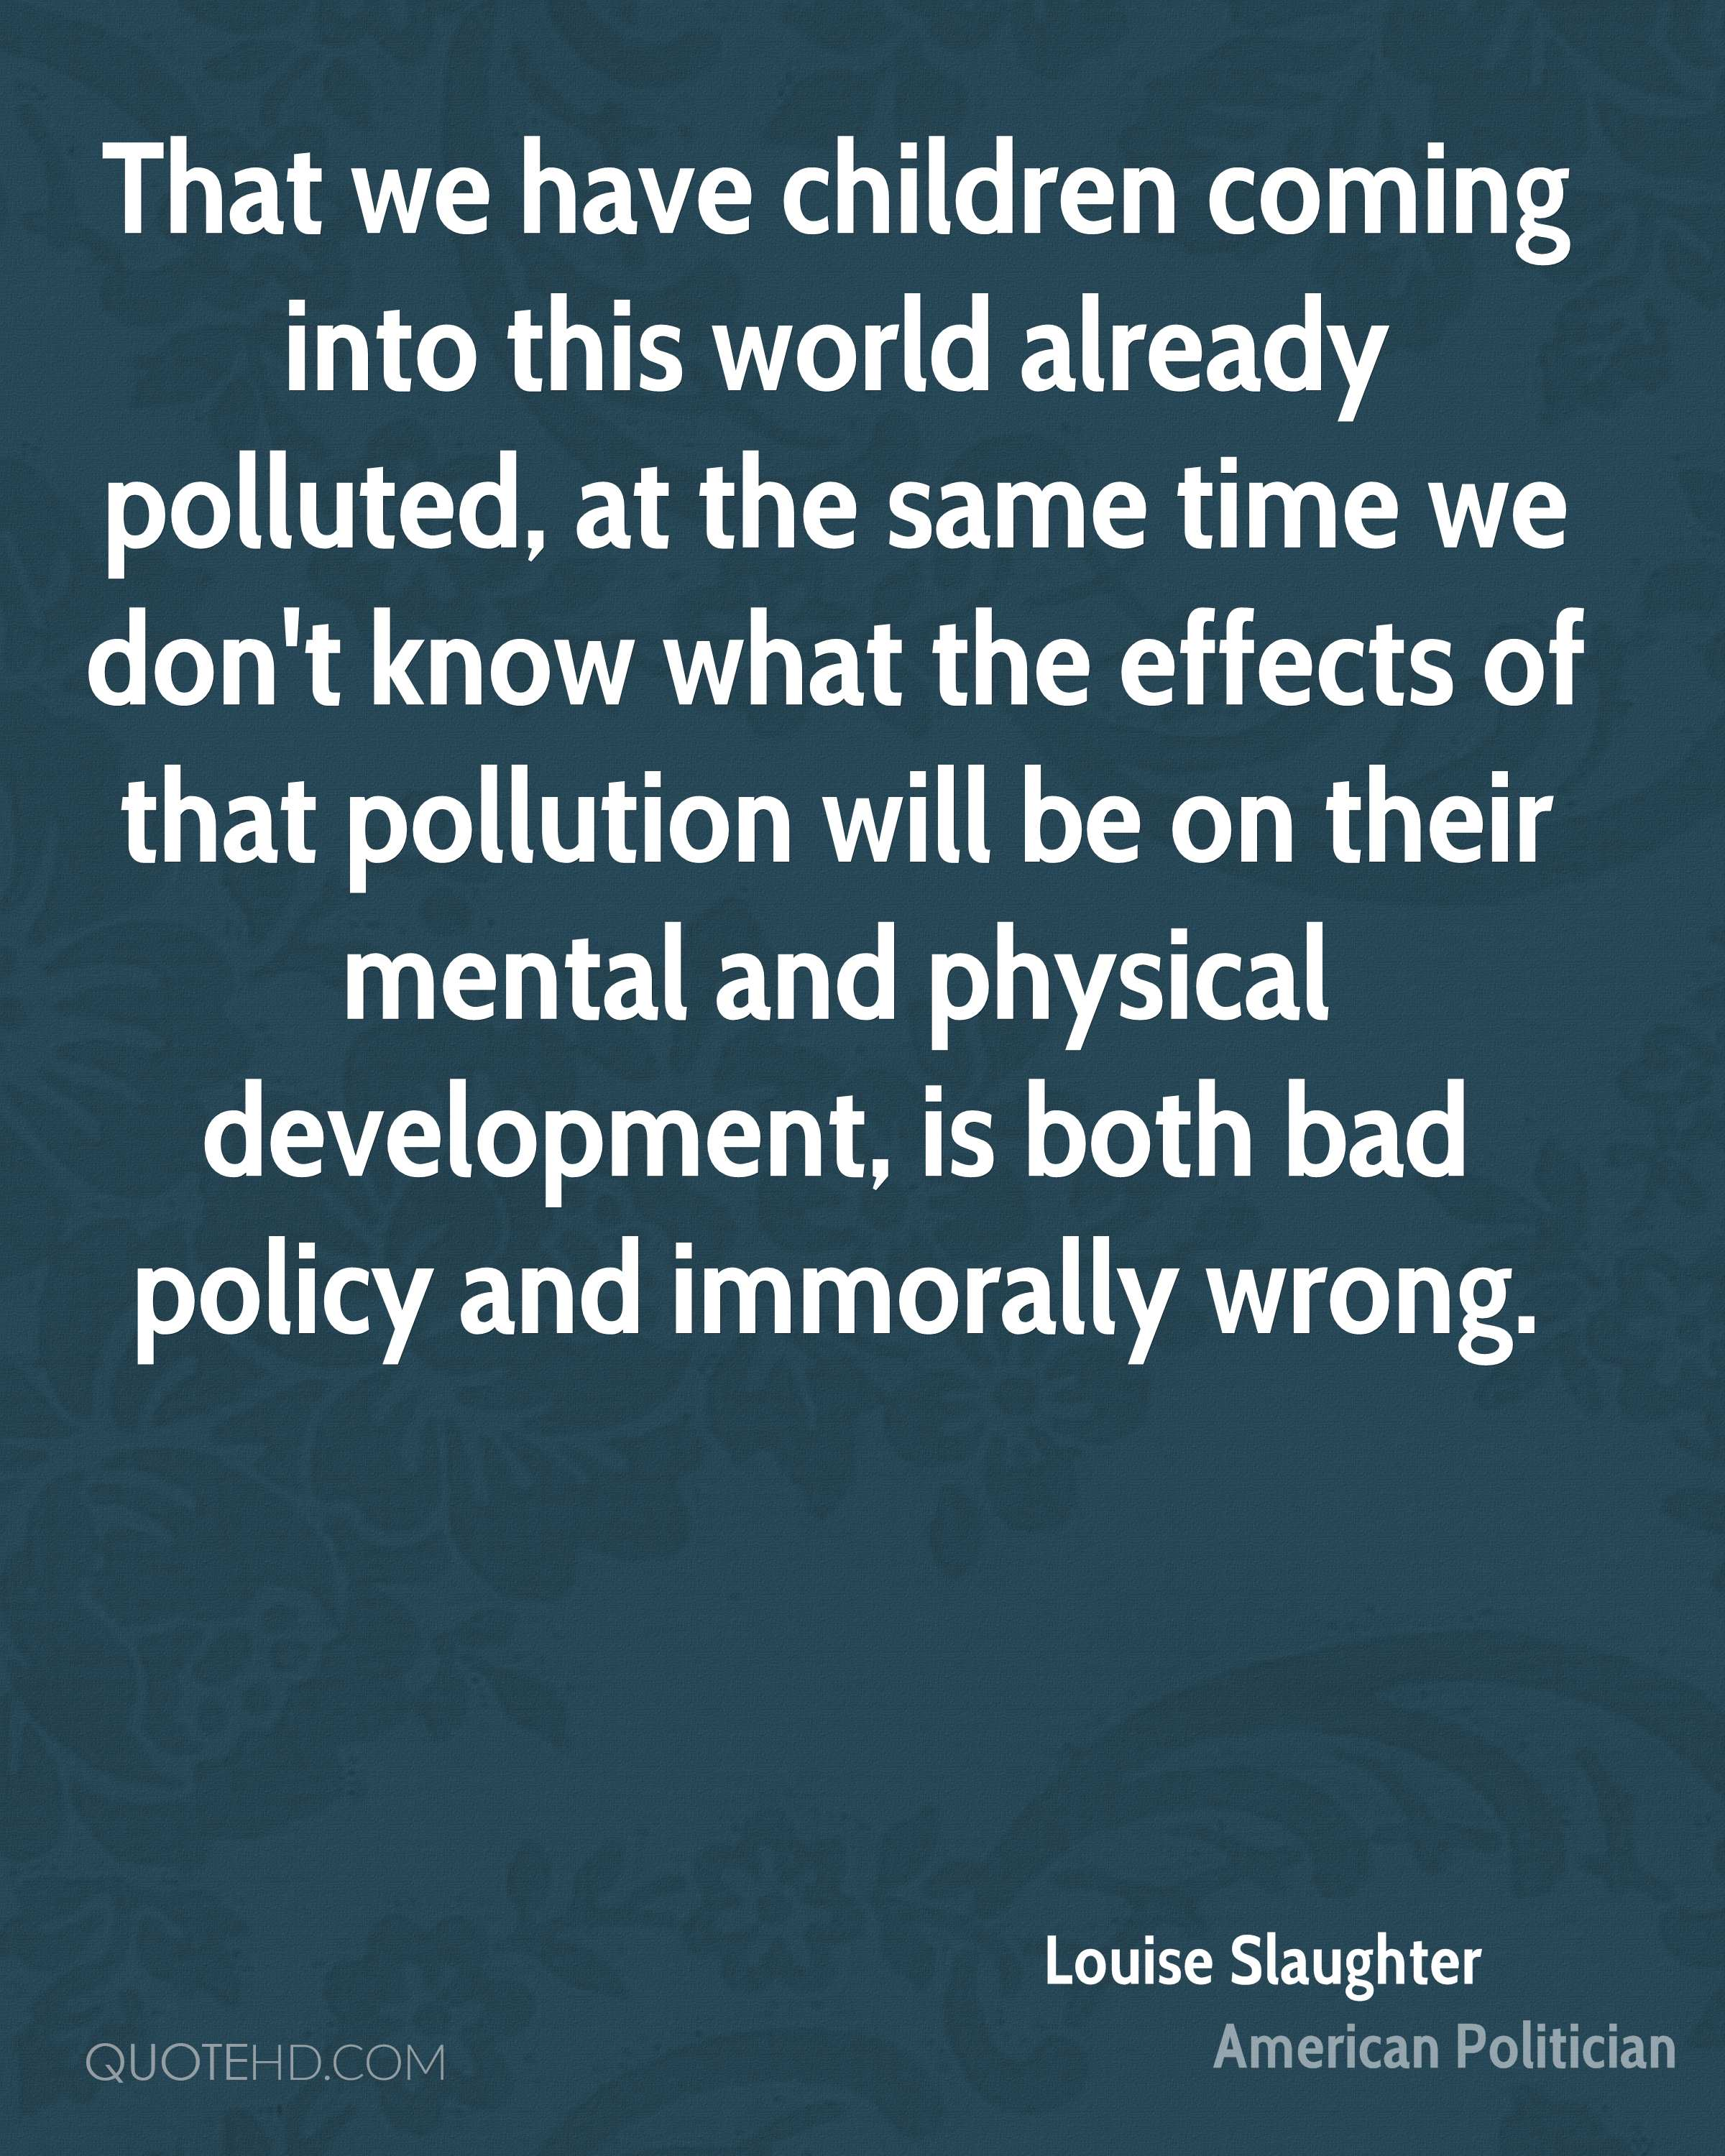 That we have children coming into this world already polluted, at the same time we don't know what the effects of that pollution will be on their mental and physical development, is both bad policy and immorally wrong.